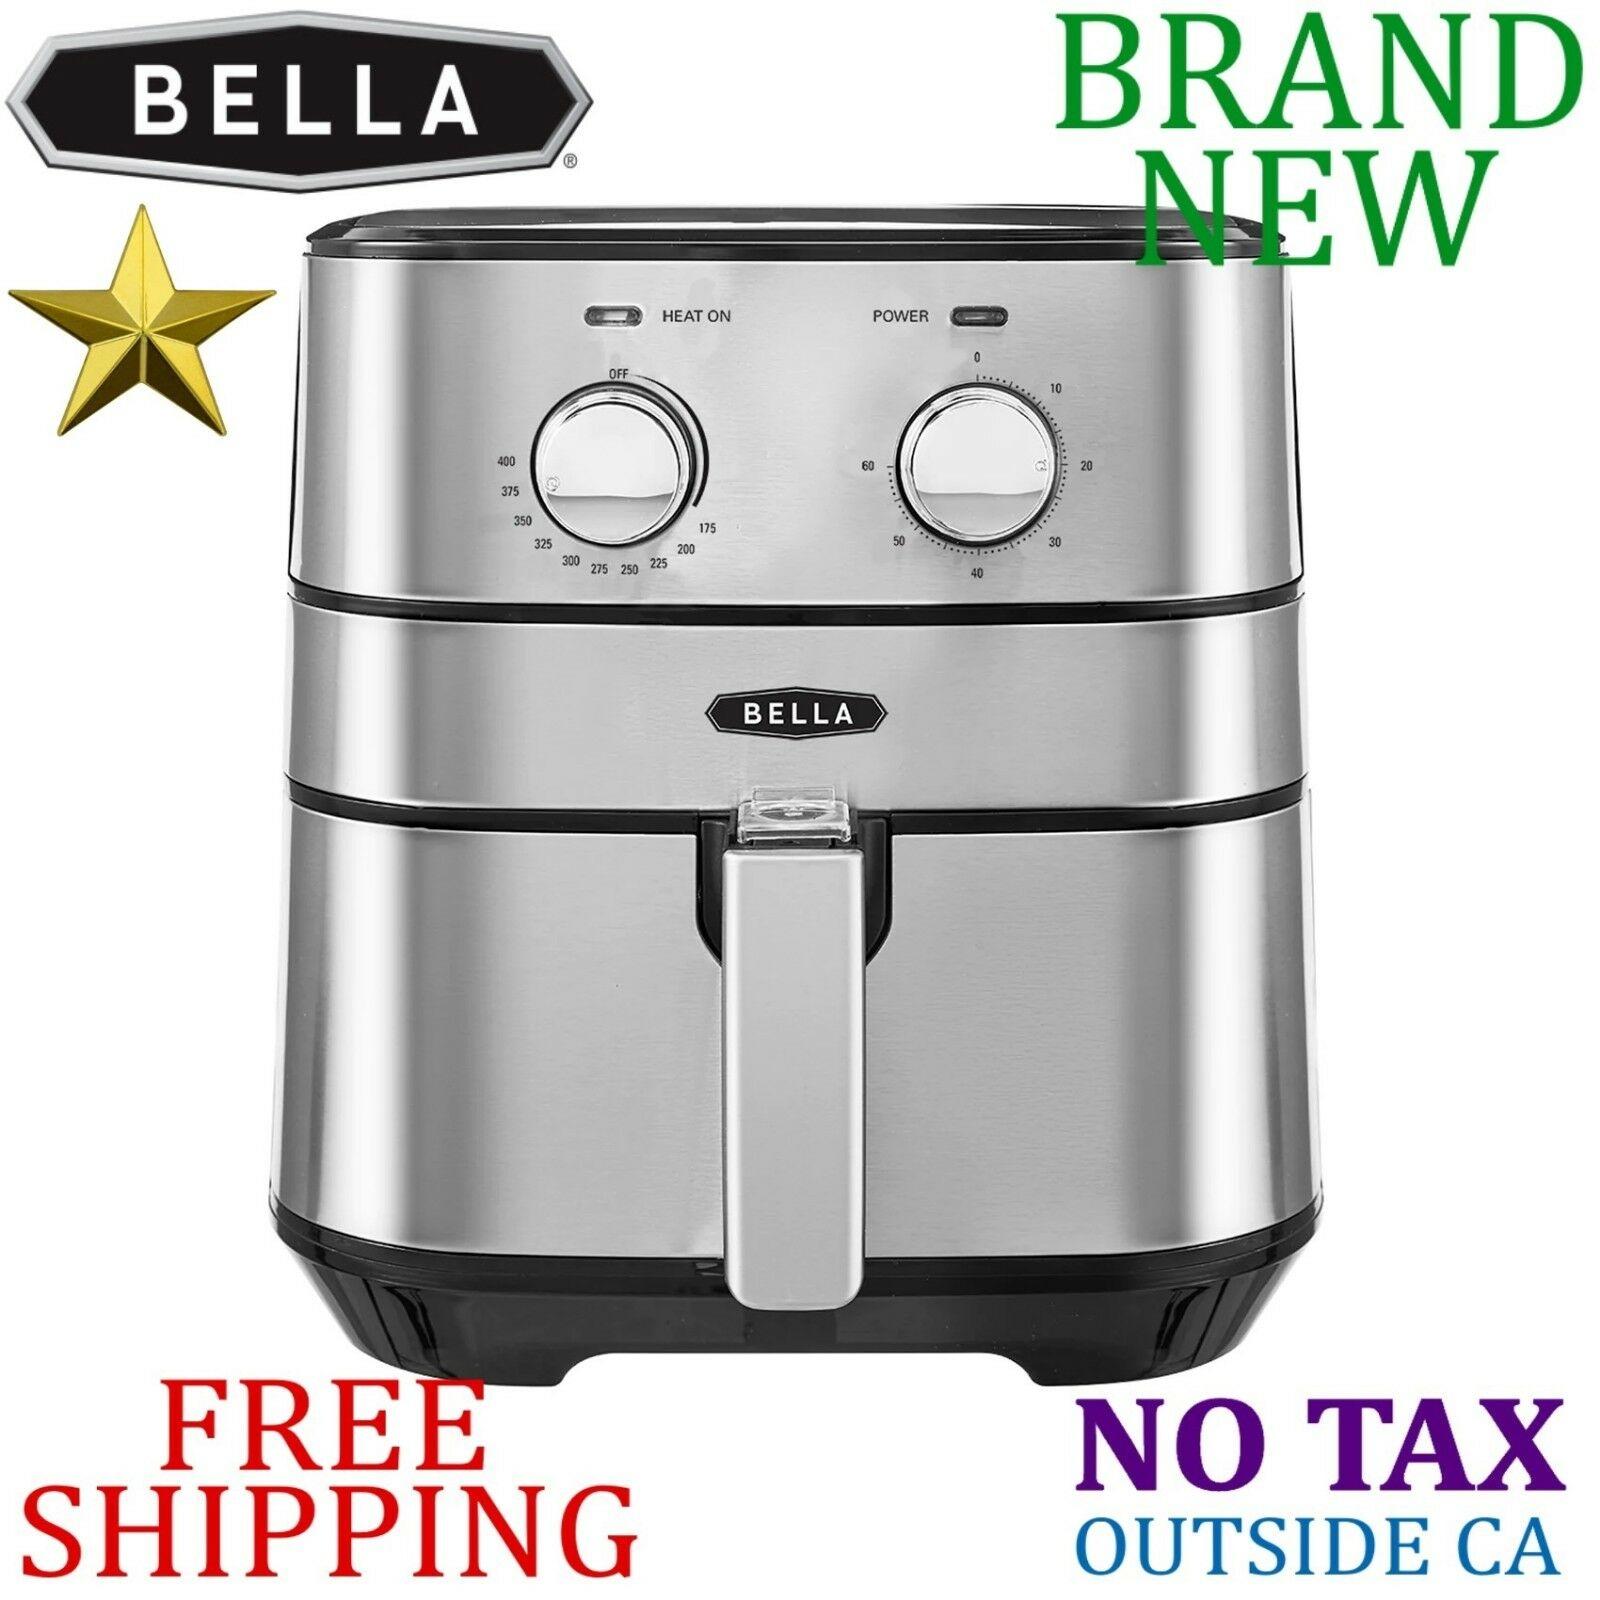 NEW Bella STAINLESS STEEL Air FRYER 5.3 qt Auto Timer 1700W Basket FAST Cooking